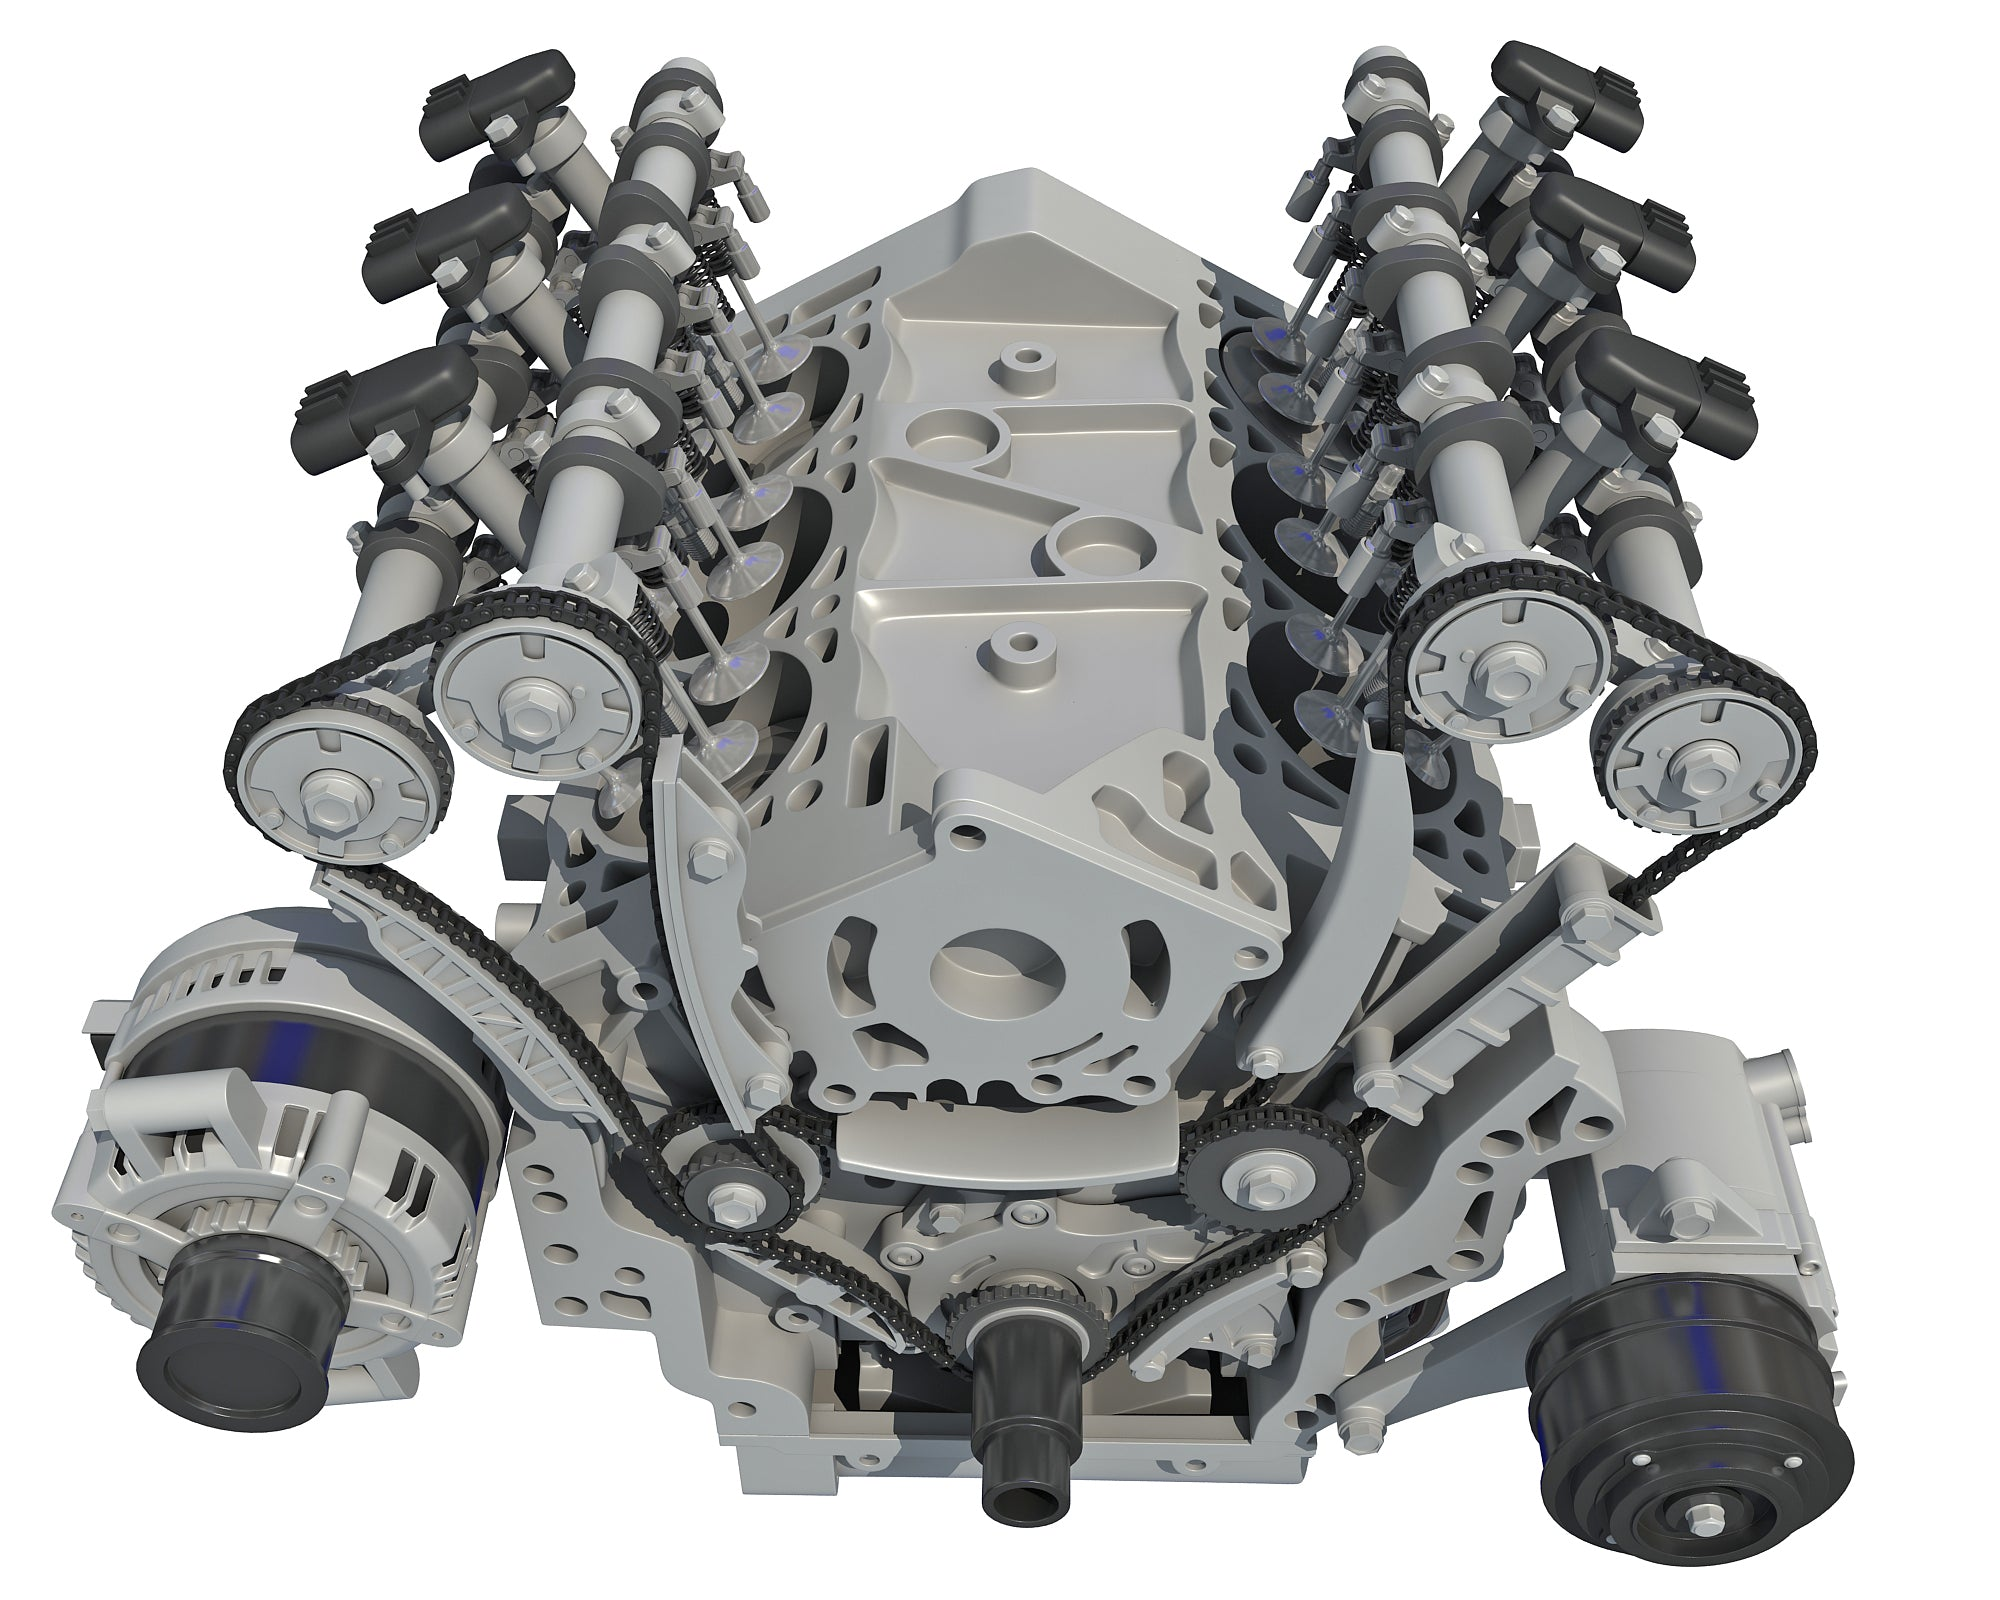 Twin Turbo Engine - 3D Models